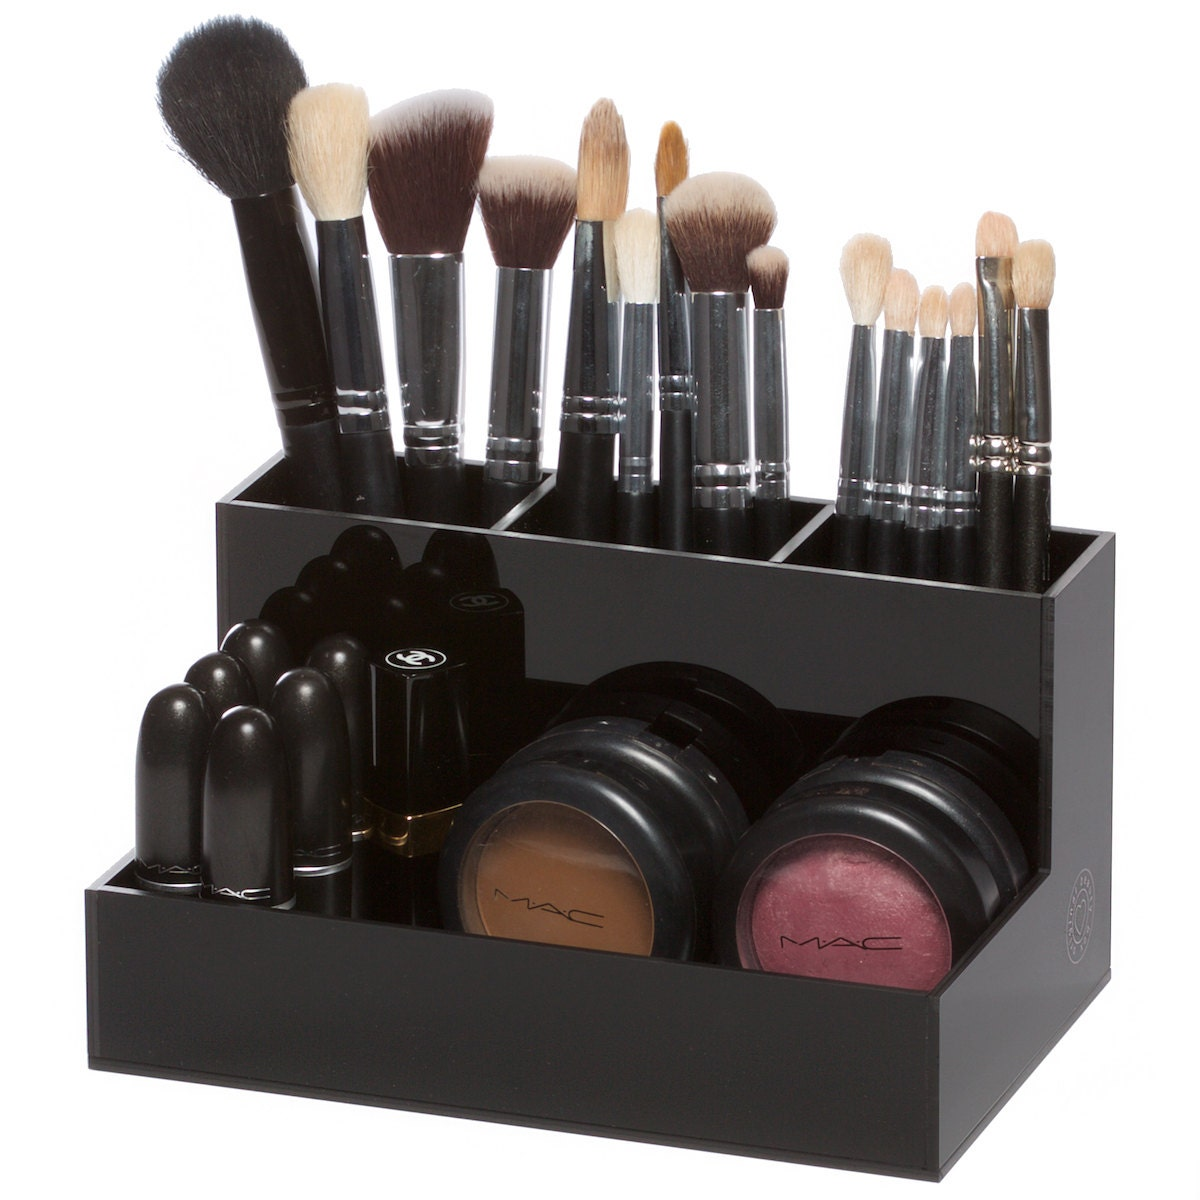 black acrylic brush holder makeup organizer. Black Bedroom Furniture Sets. Home Design Ideas